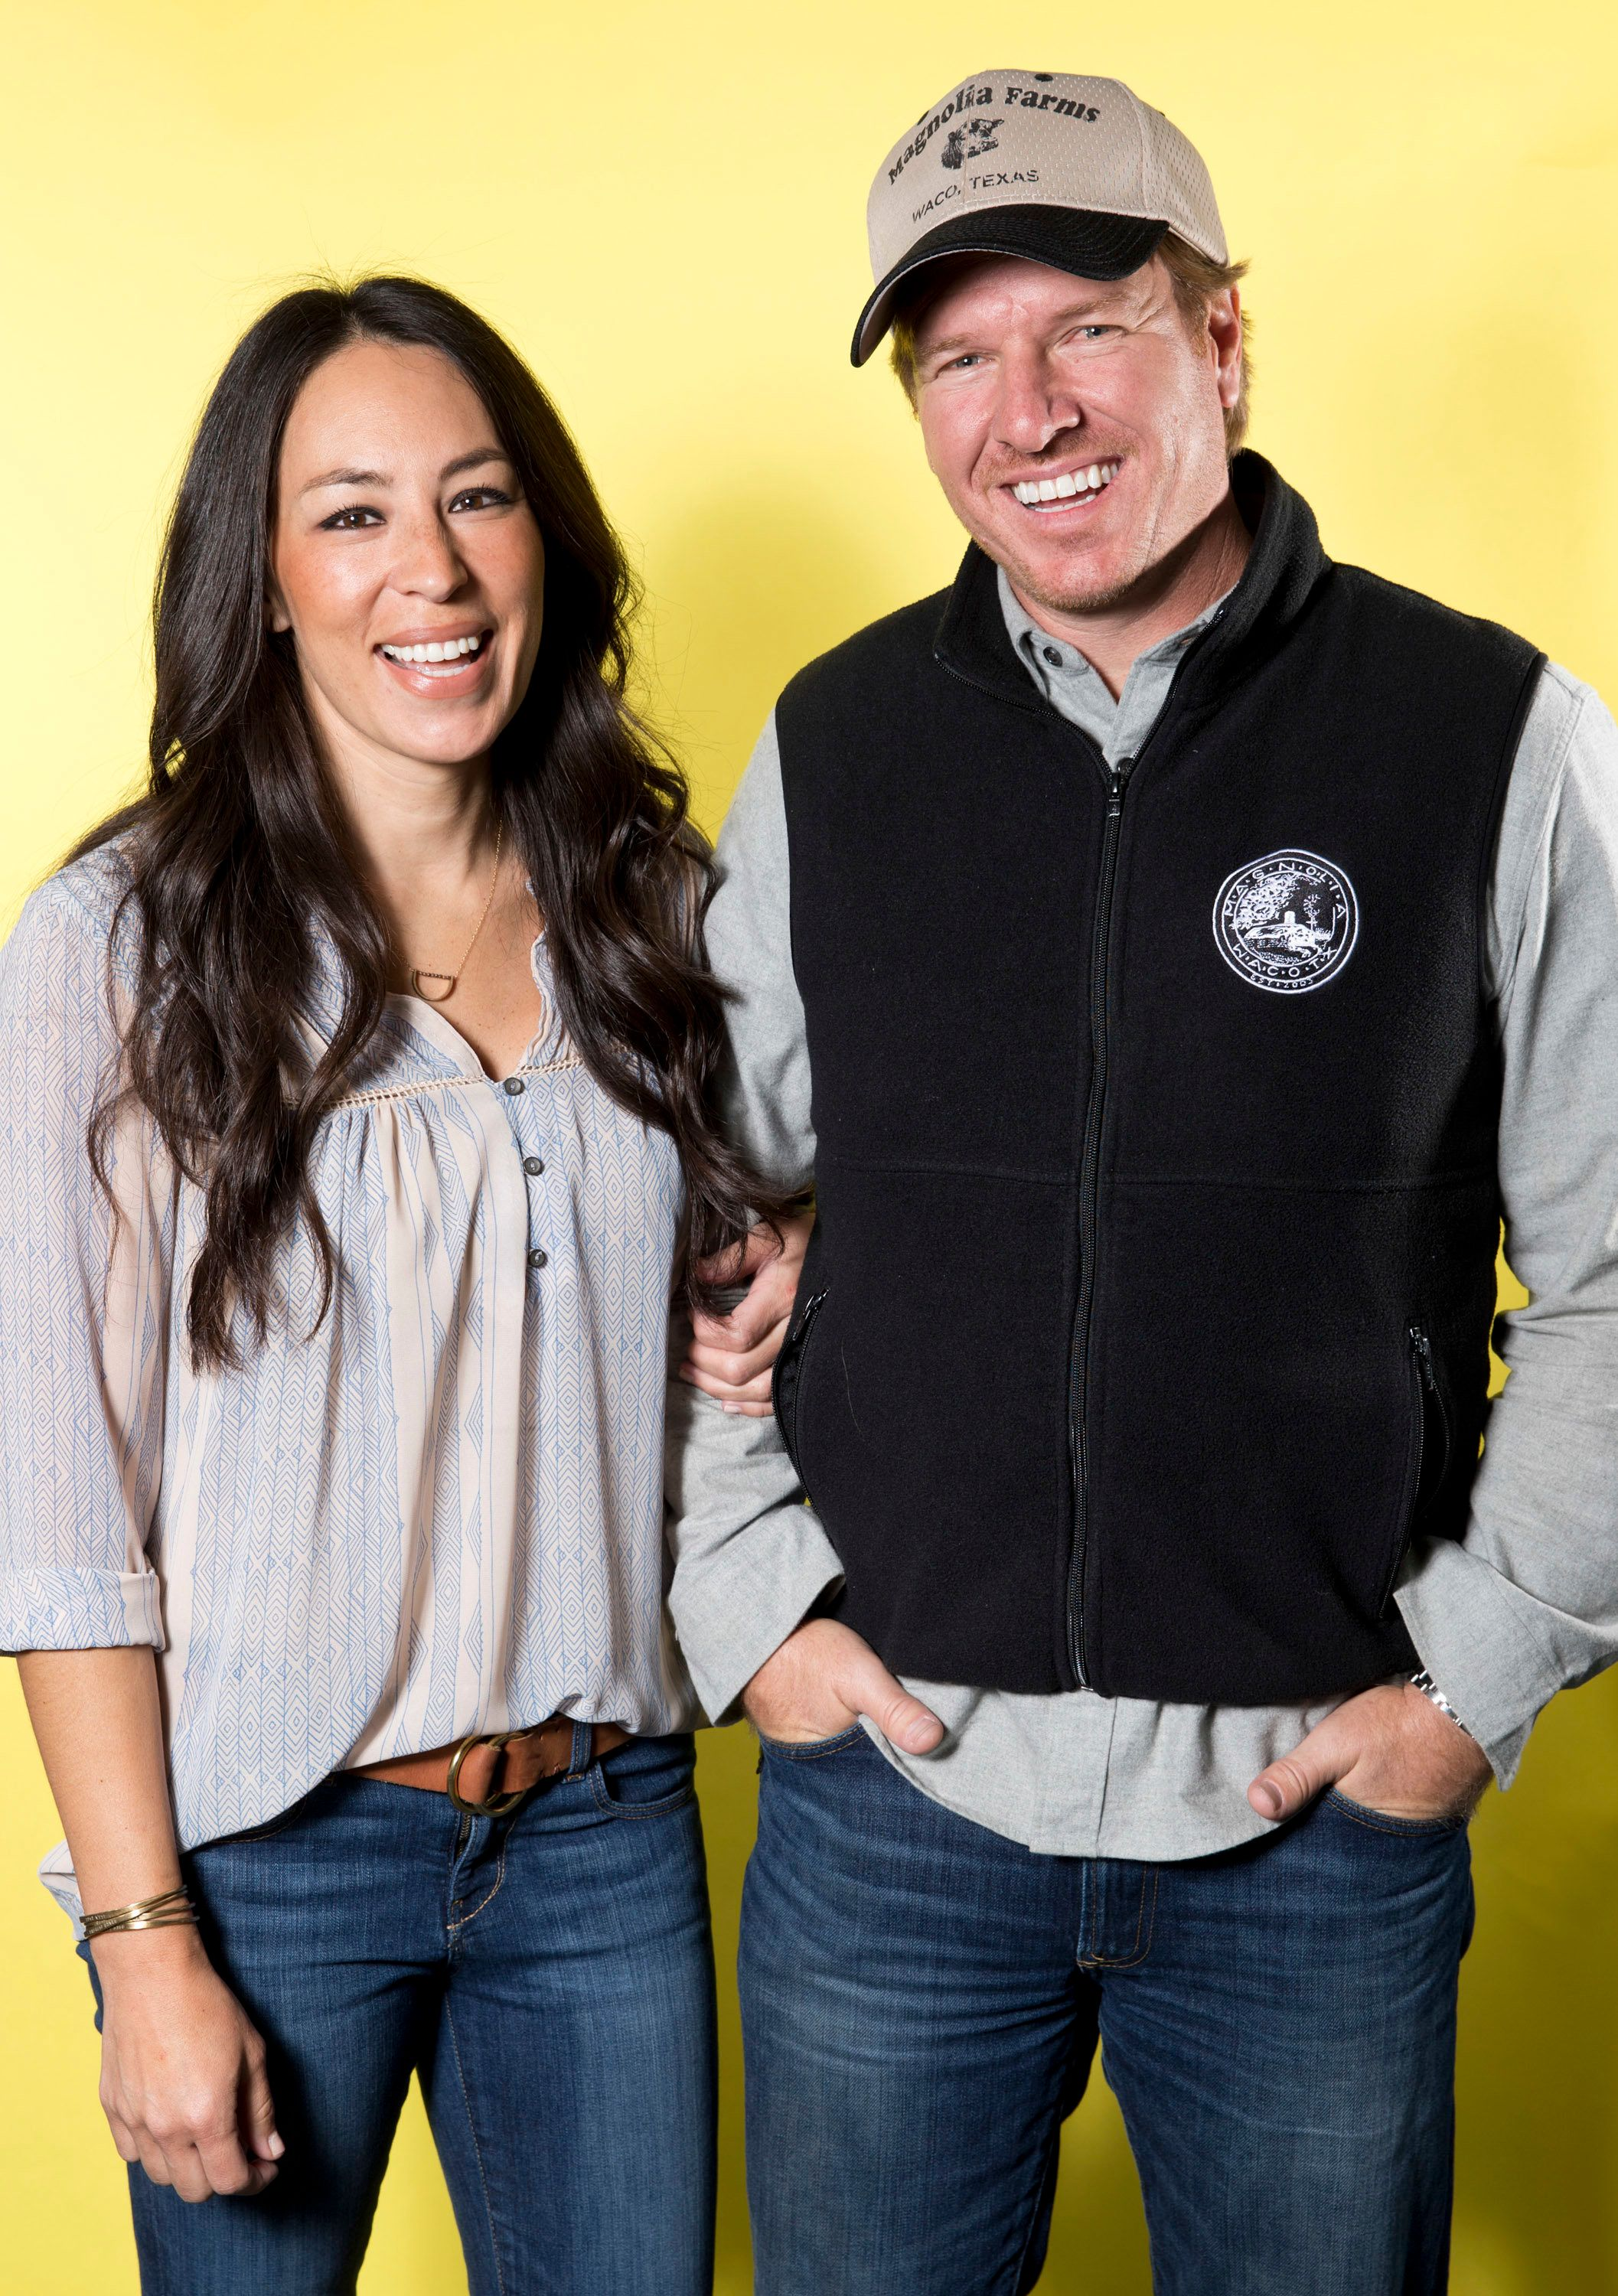 Chip Gaines On Leaving 'Fixer Upper' Show: 'I Felt Caged,